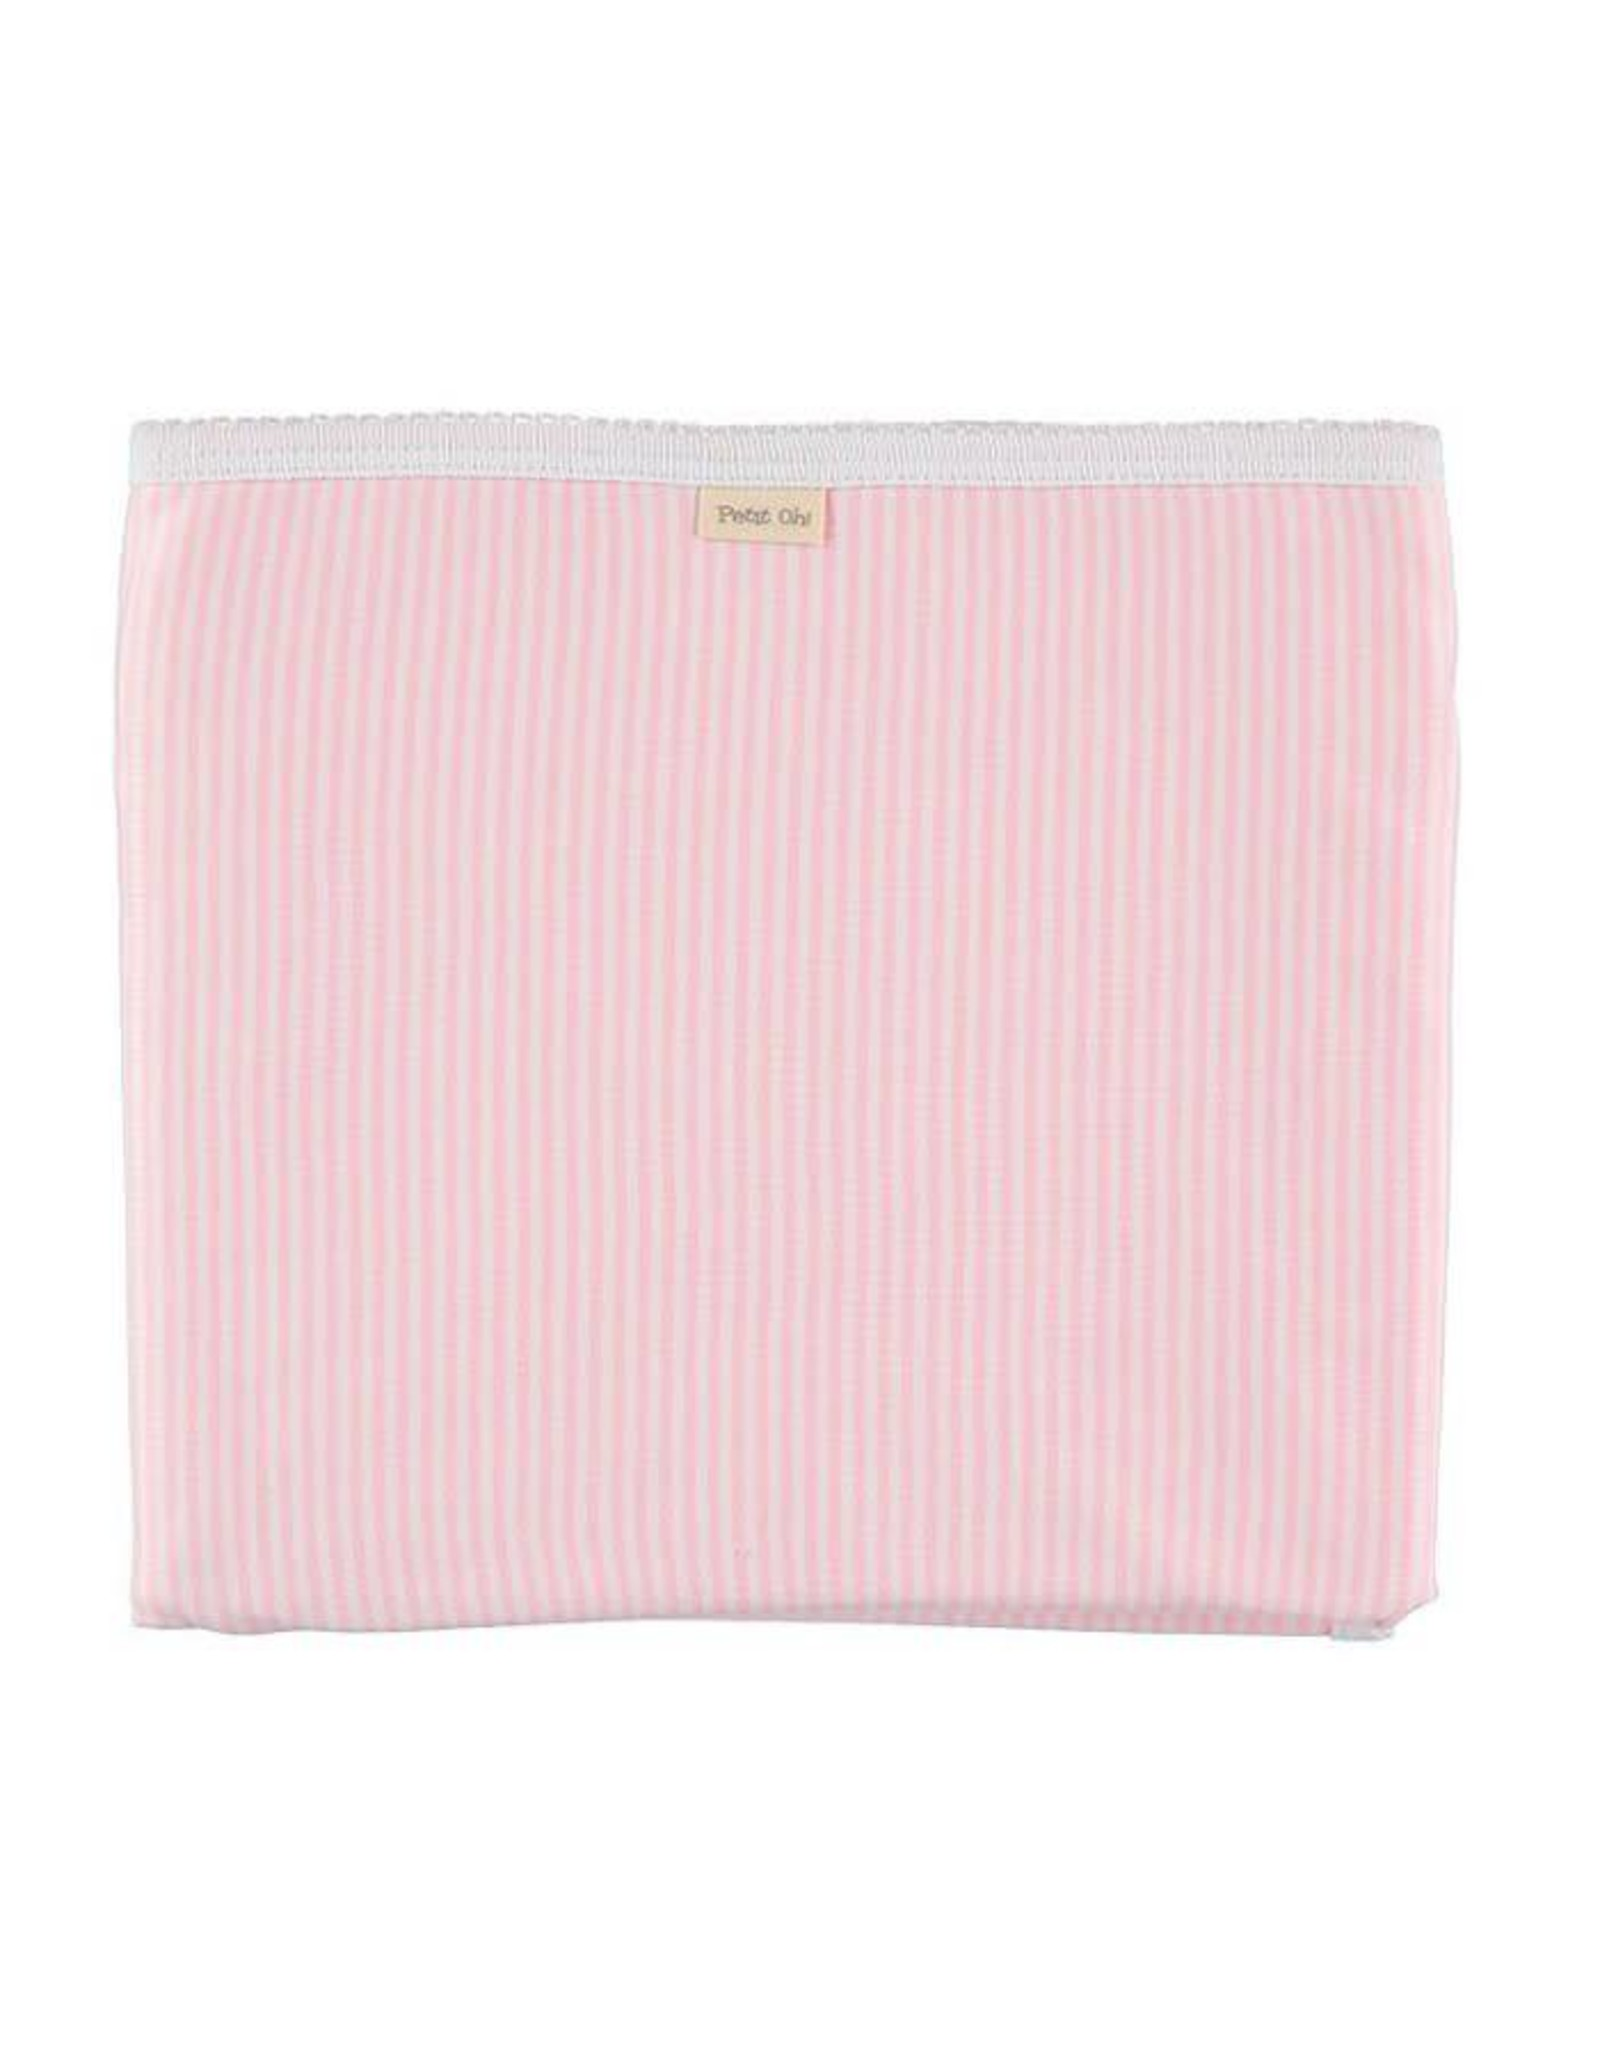 PETIT OH! Pink Stripe Cotton Blanket